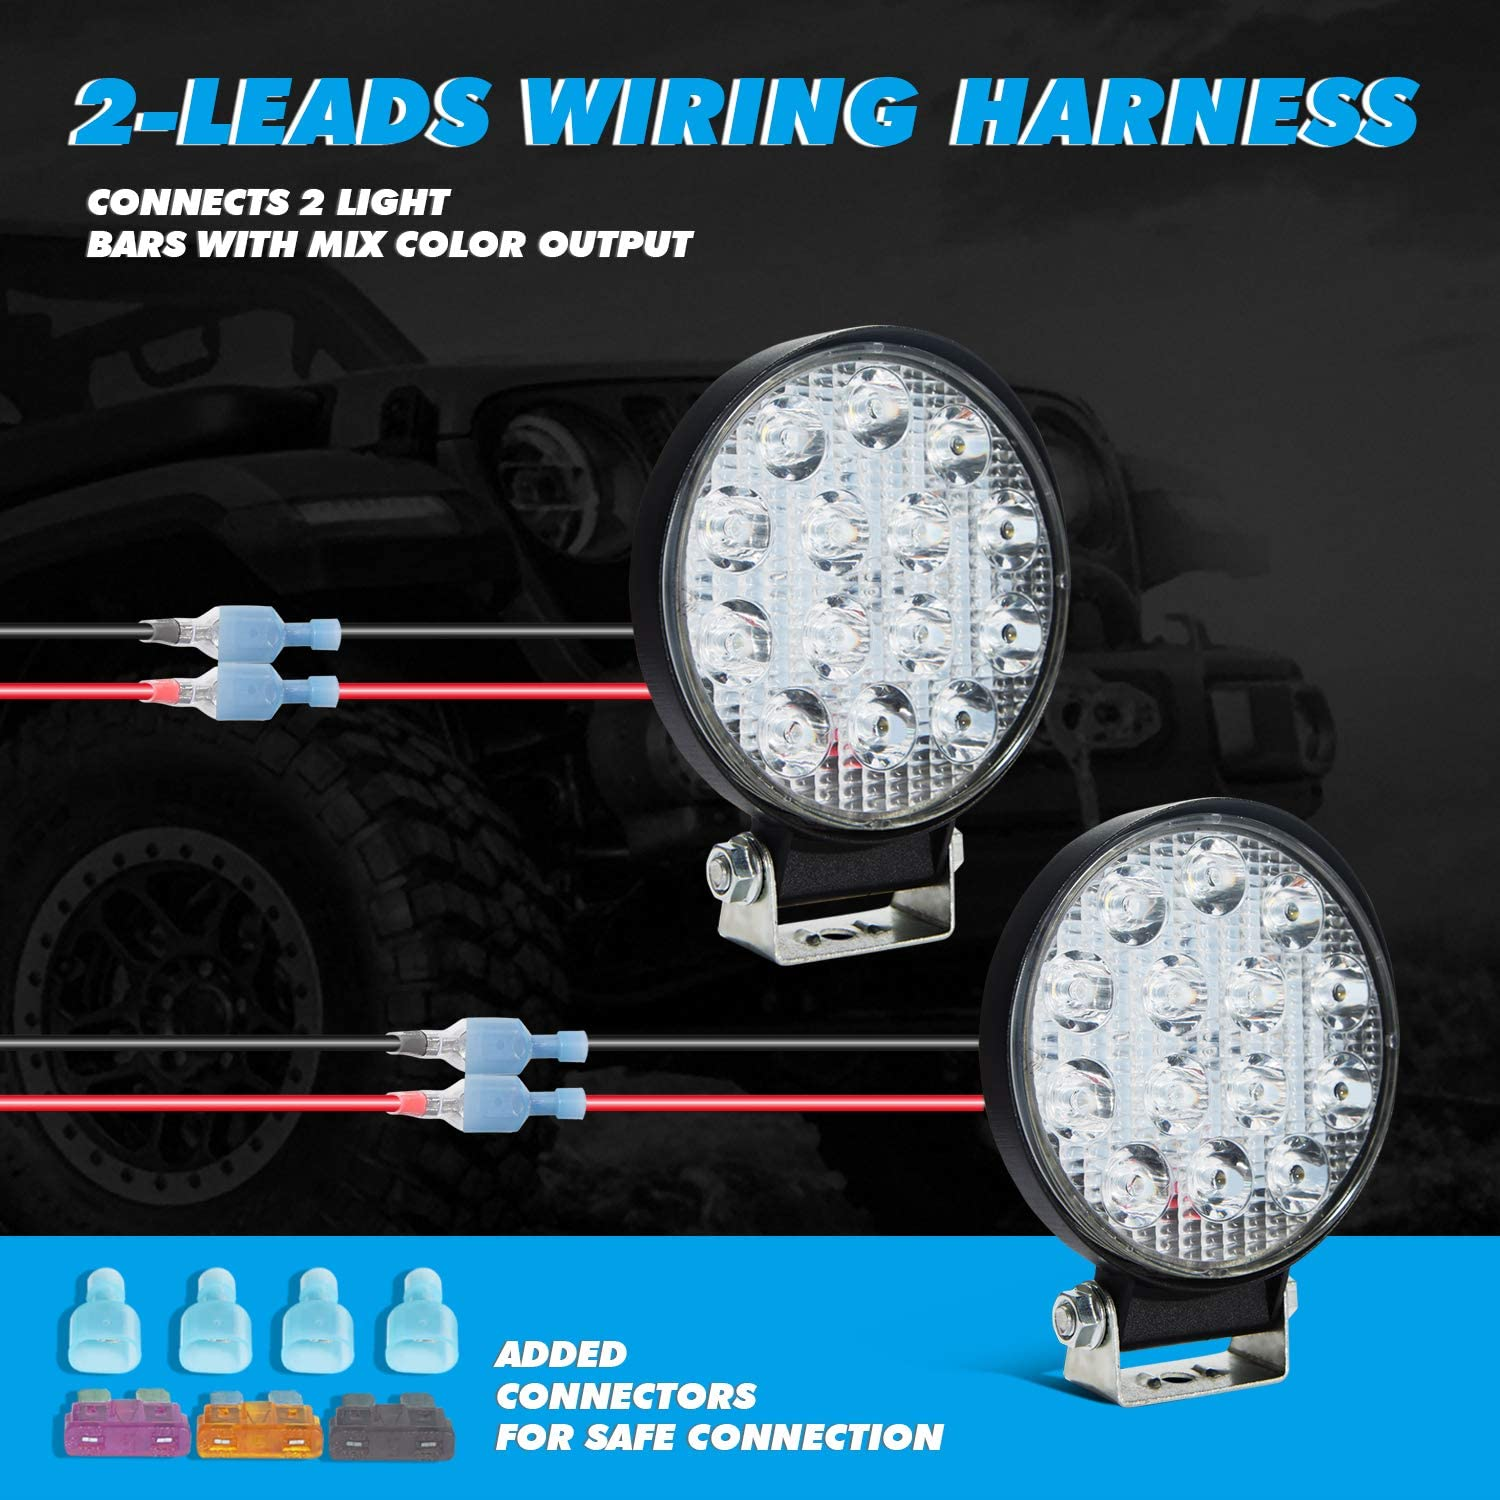 Parleto LED Light Bar Wiring Harness Kit 12V with Dual Switches Power Relay Blade Fuse for Off Road Lights LED Work Light with Multi-Modes 2 LEADS